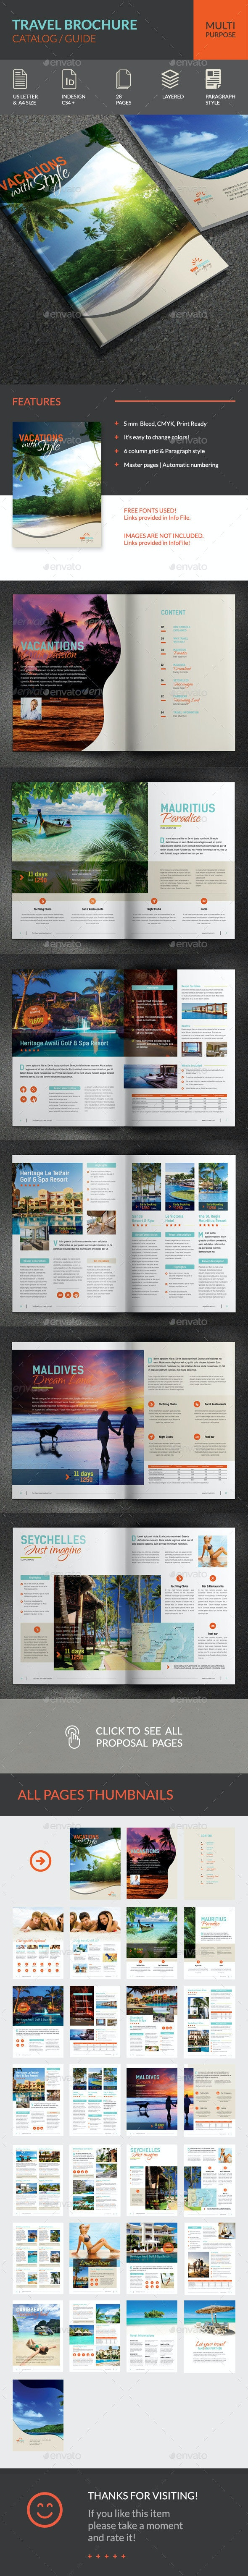 Travel Brochure - Brochures Print Templates